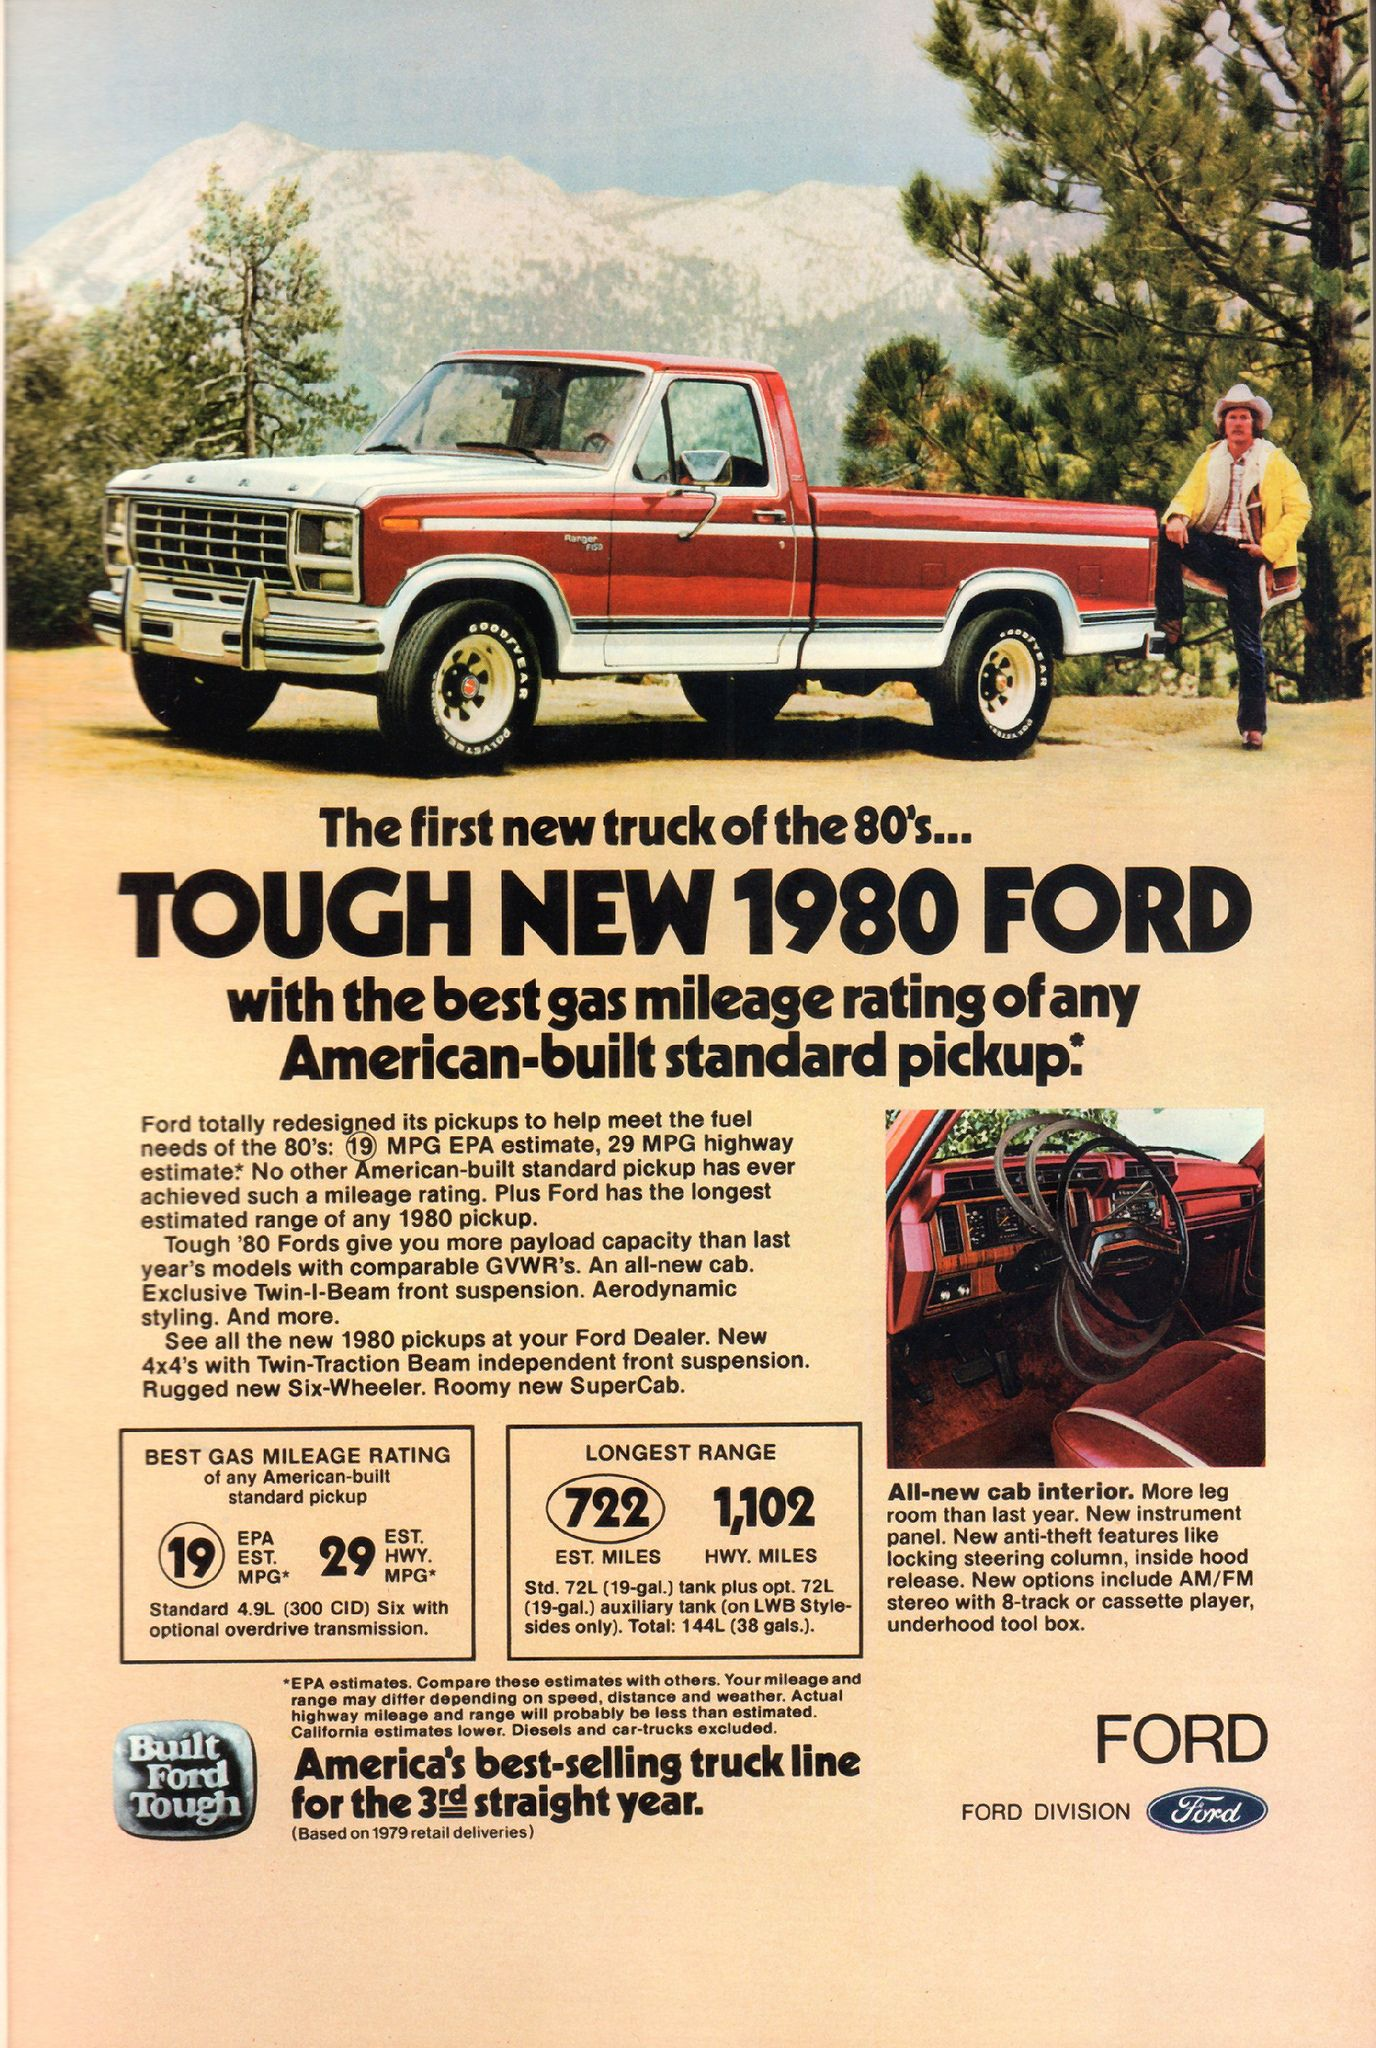 1980 Ford Pickup Truck Advertisement National Geographic April